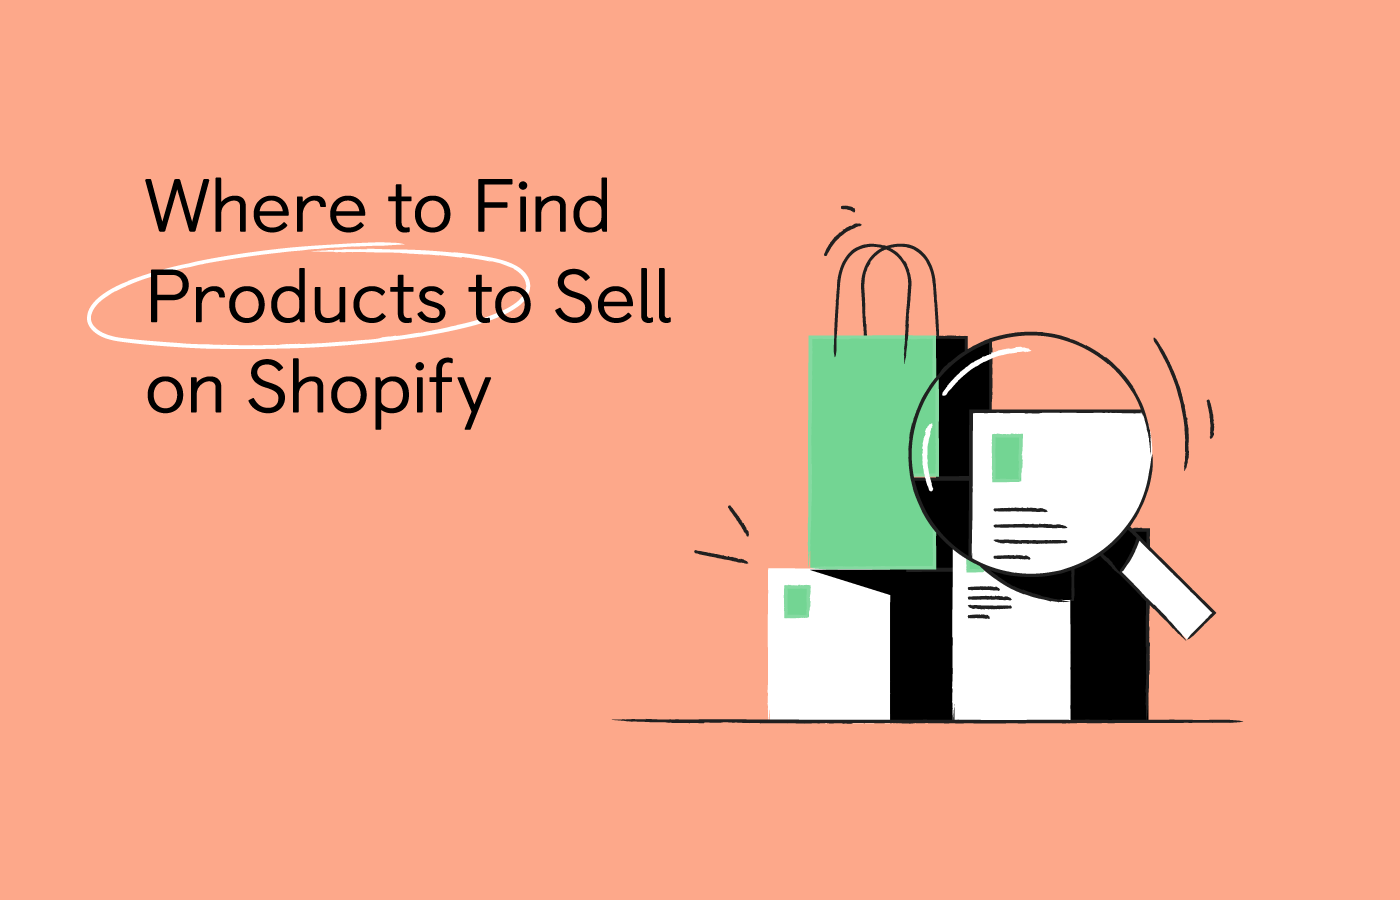 How to Find Products to Sell on Shopify: 7 Best Places